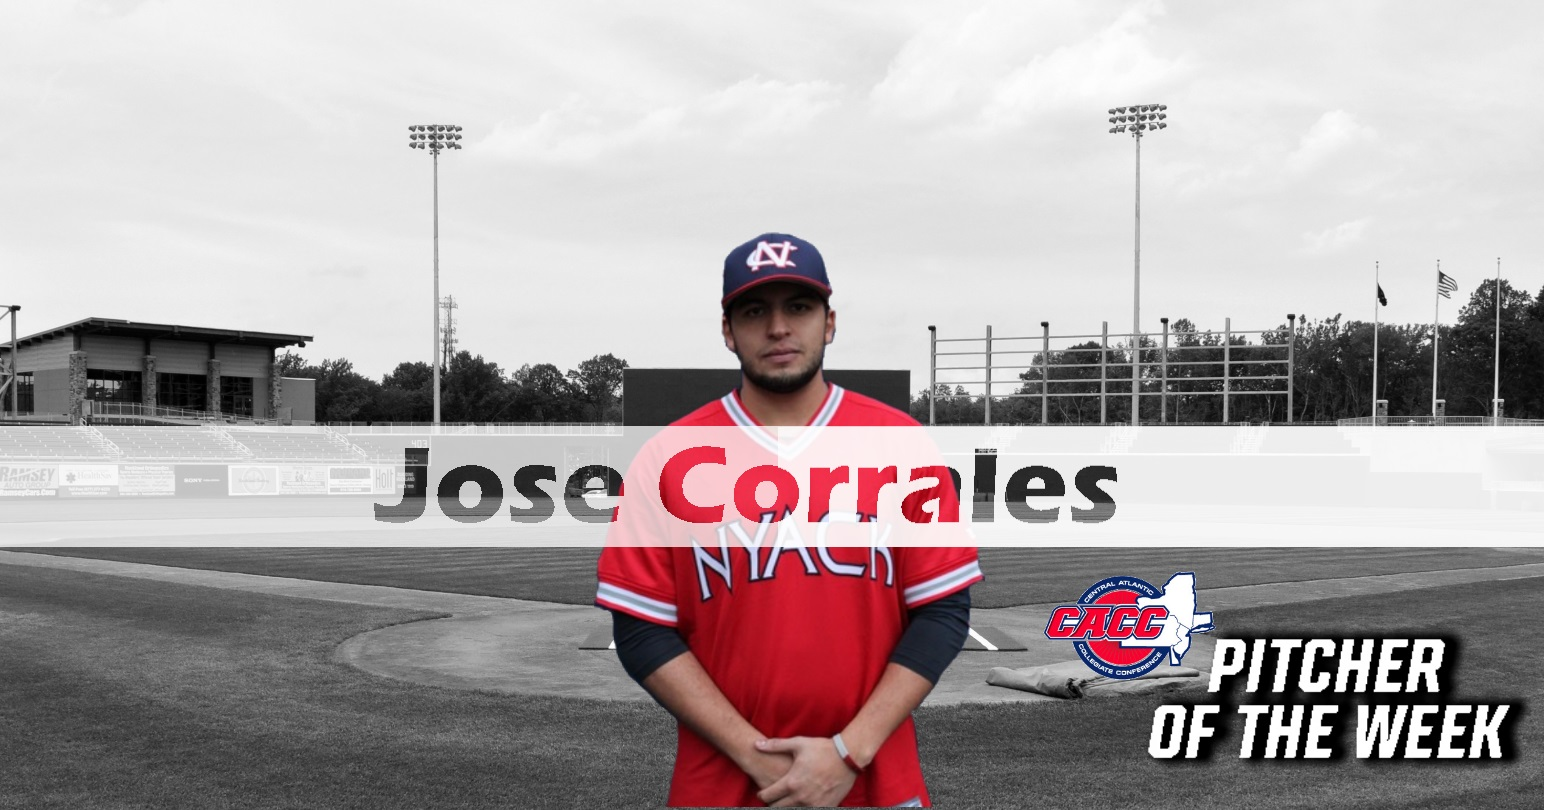 Corrales Named Pitcher of the Week, Torreullas Received Honorable Mention